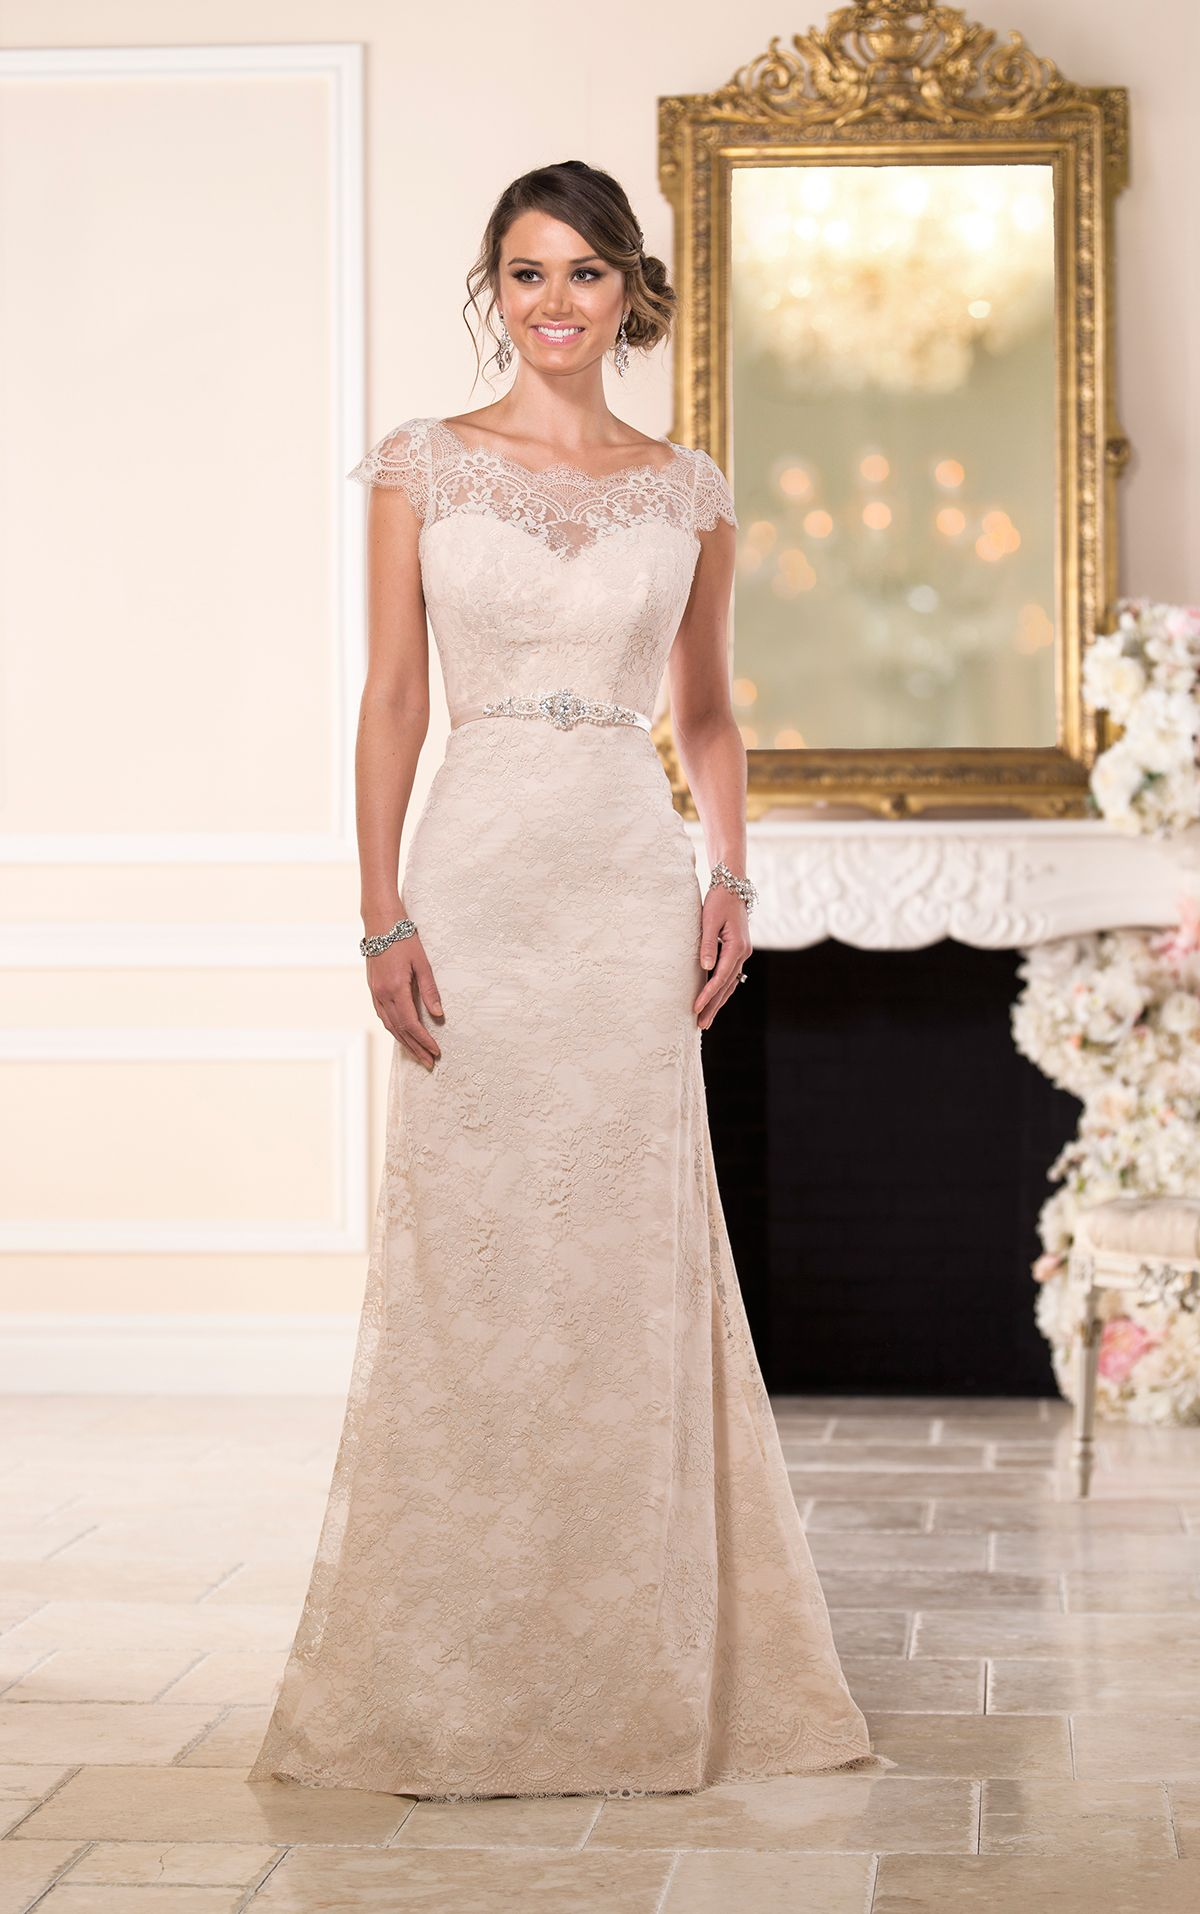 Lace aline illusion neckline wedding dress stella york illusion